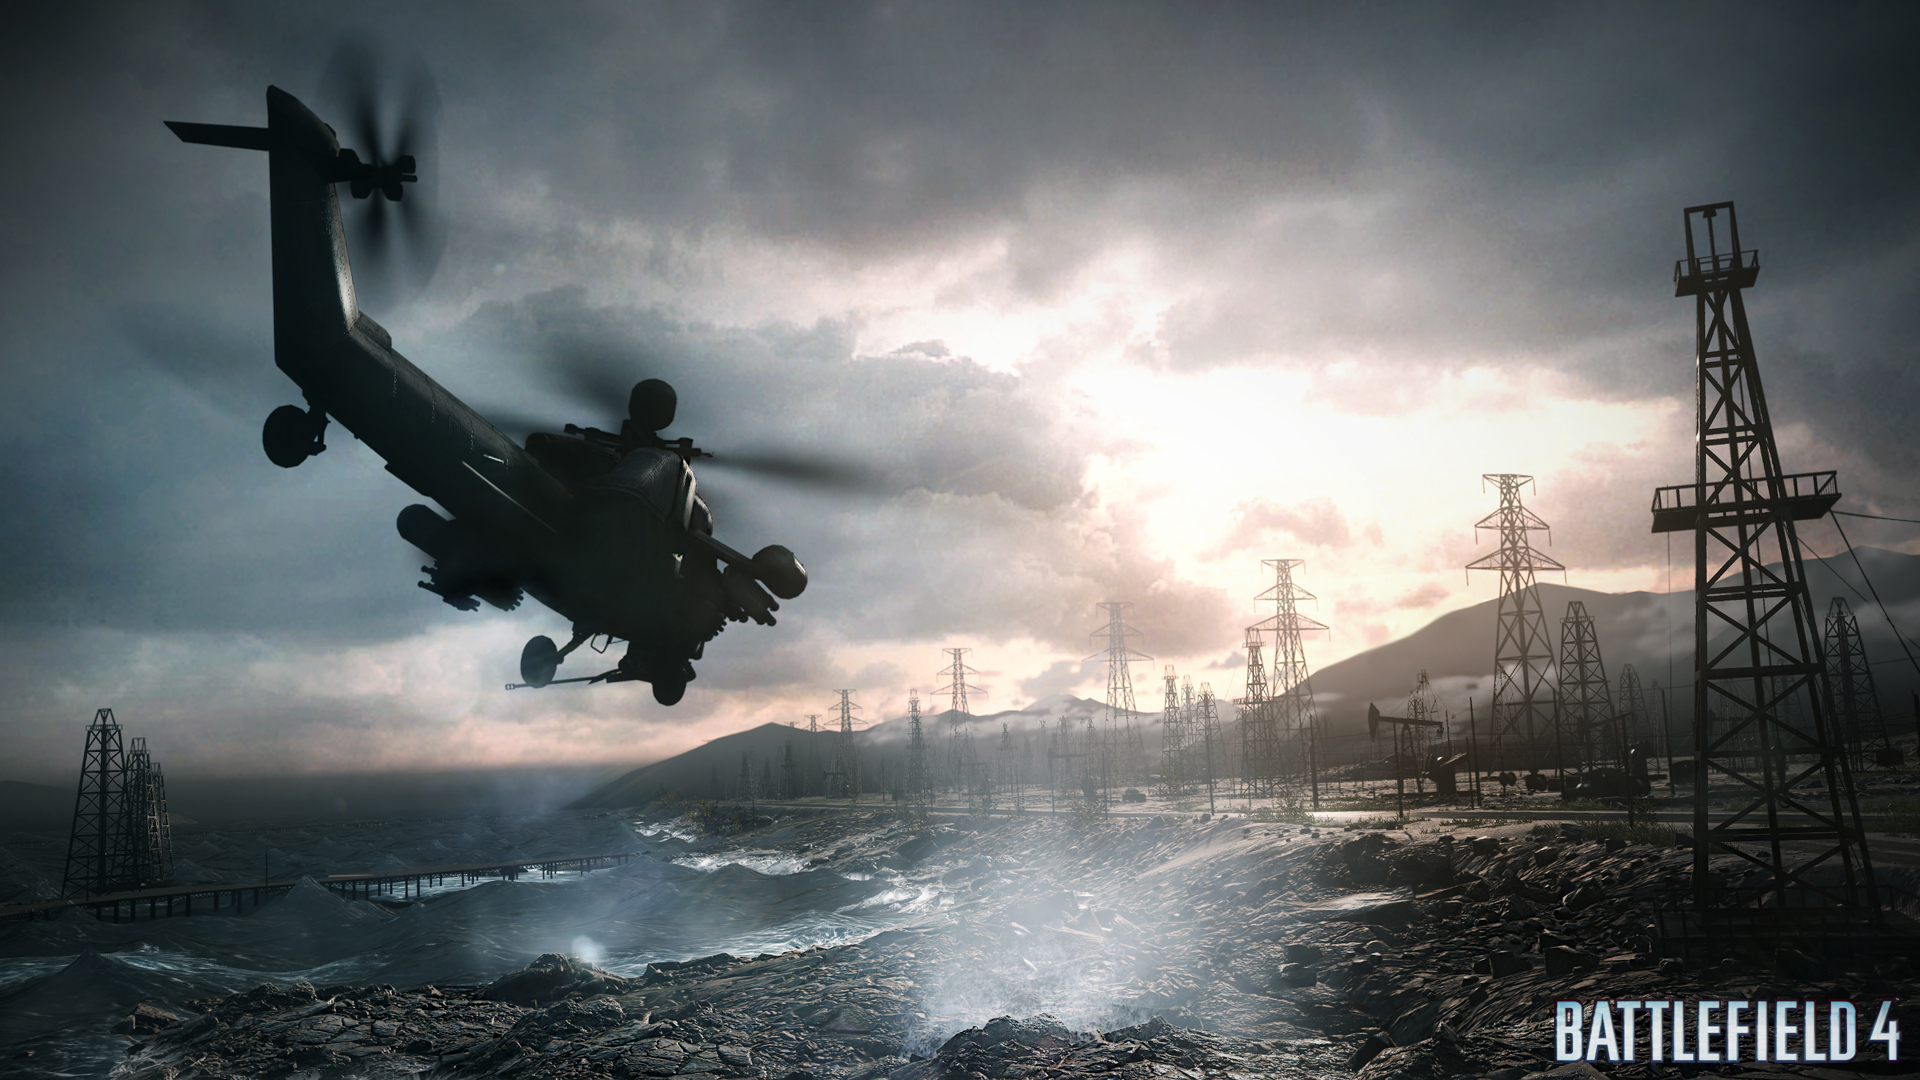 Battlefield 4 wallpaper 8